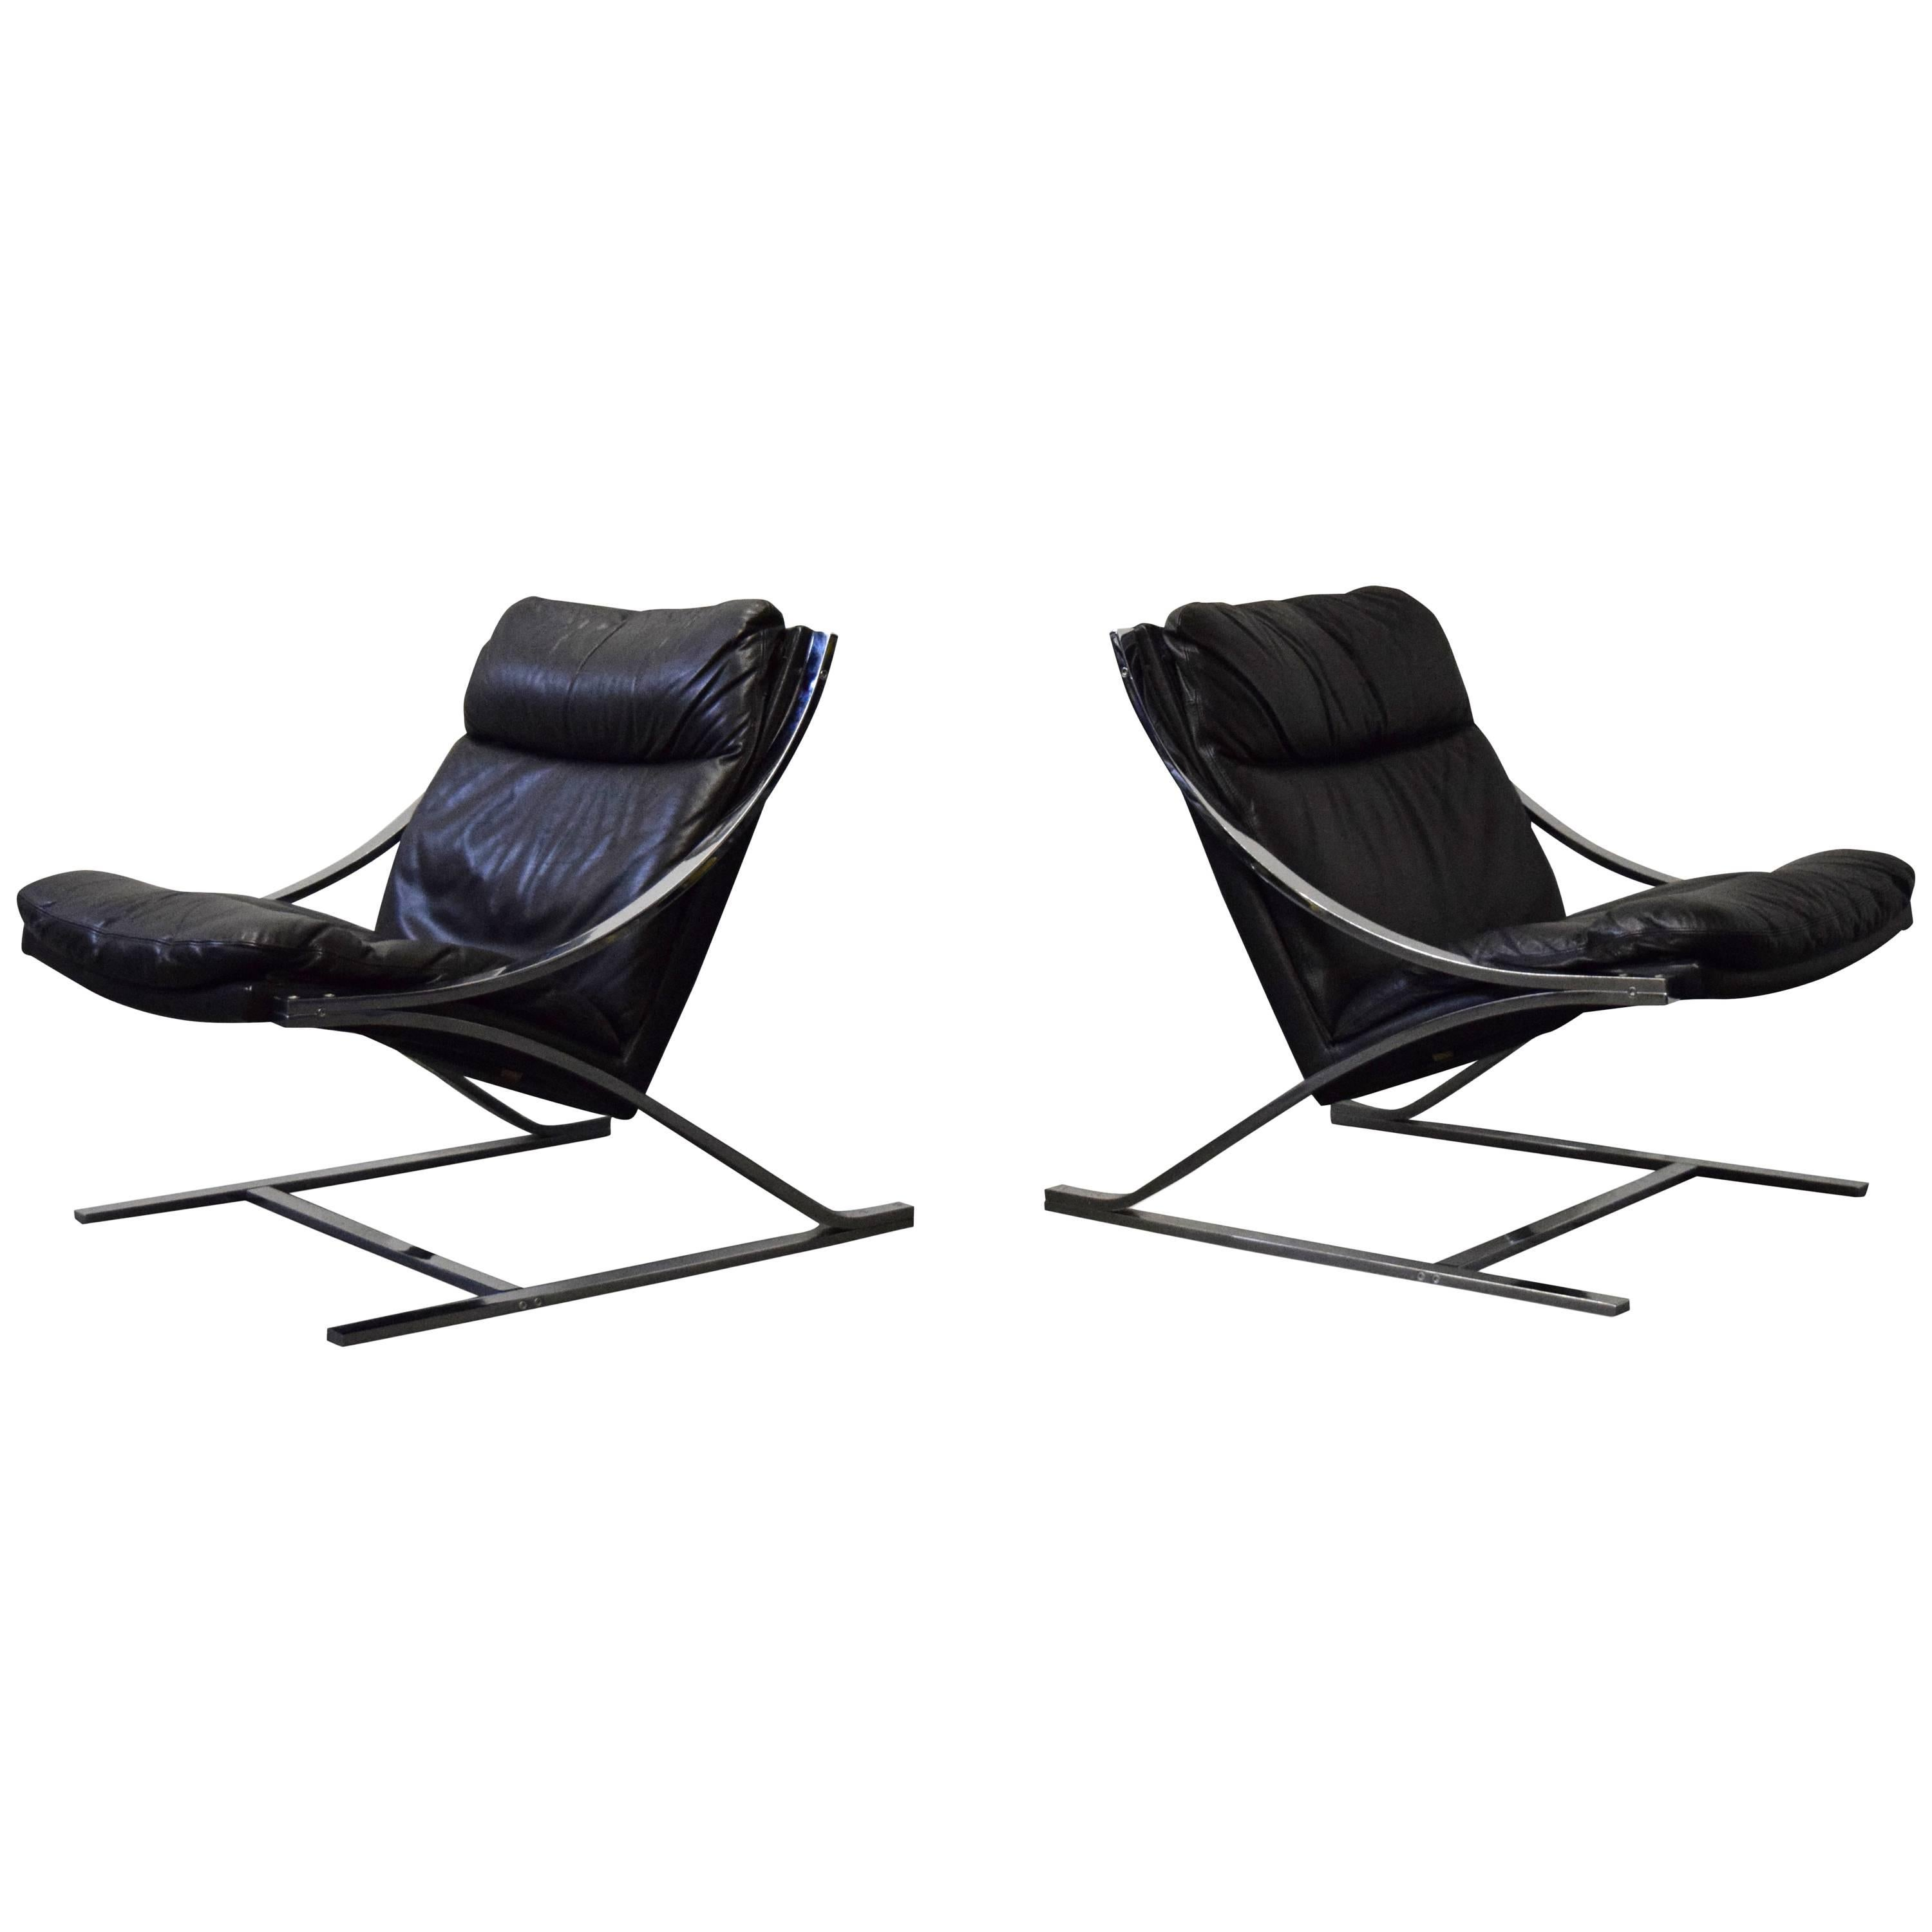 Pair of Paul Tuttle 'Zeta' Lounge Chairs